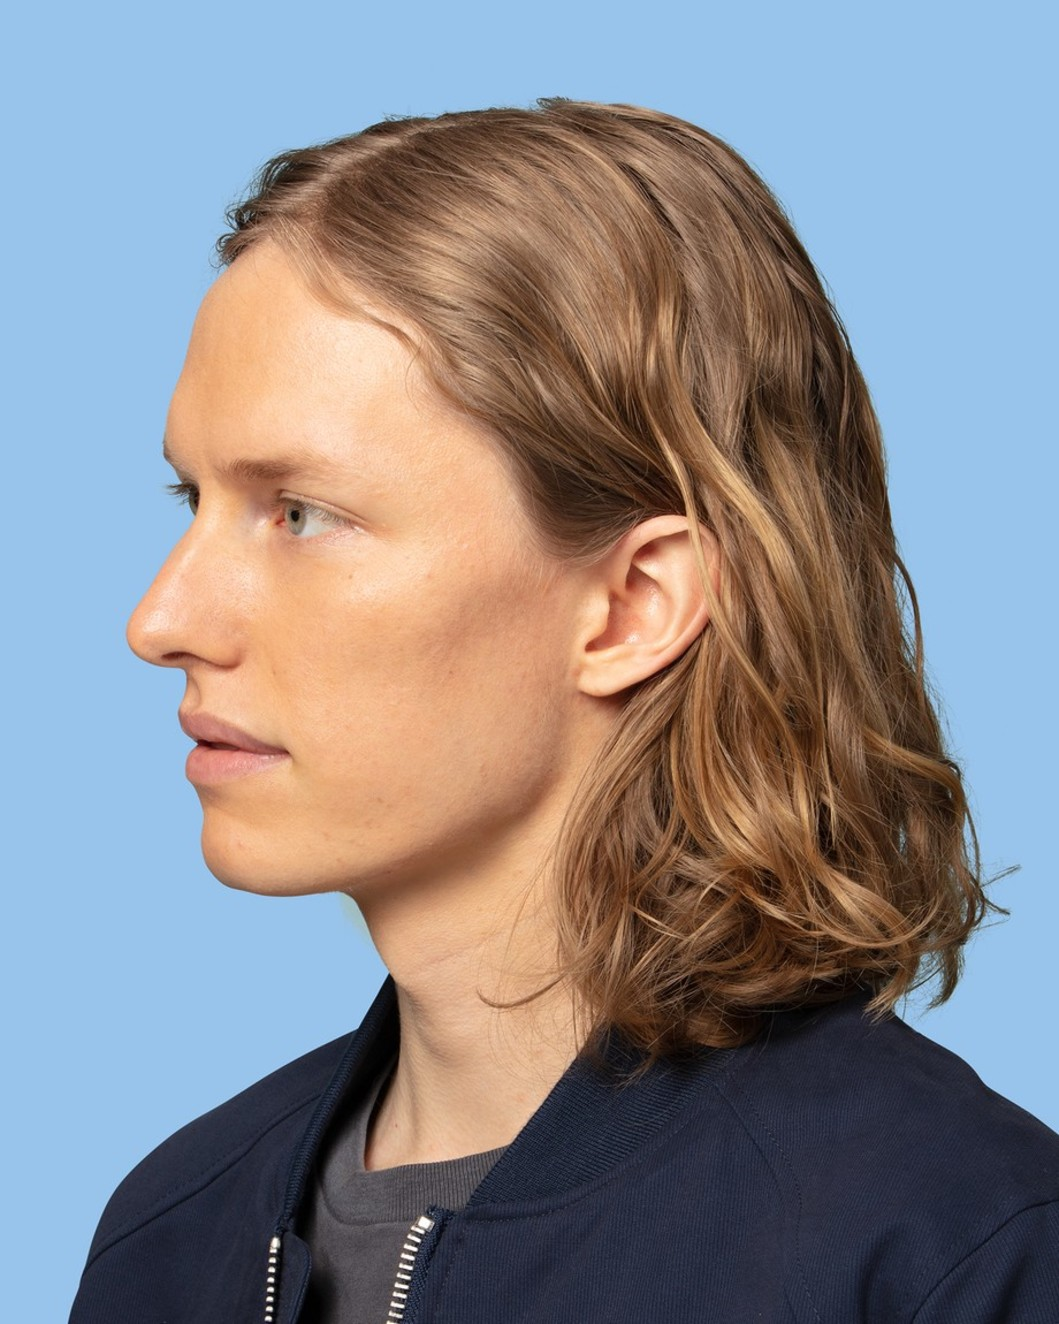 Guy with mid-length wavy hair using the product